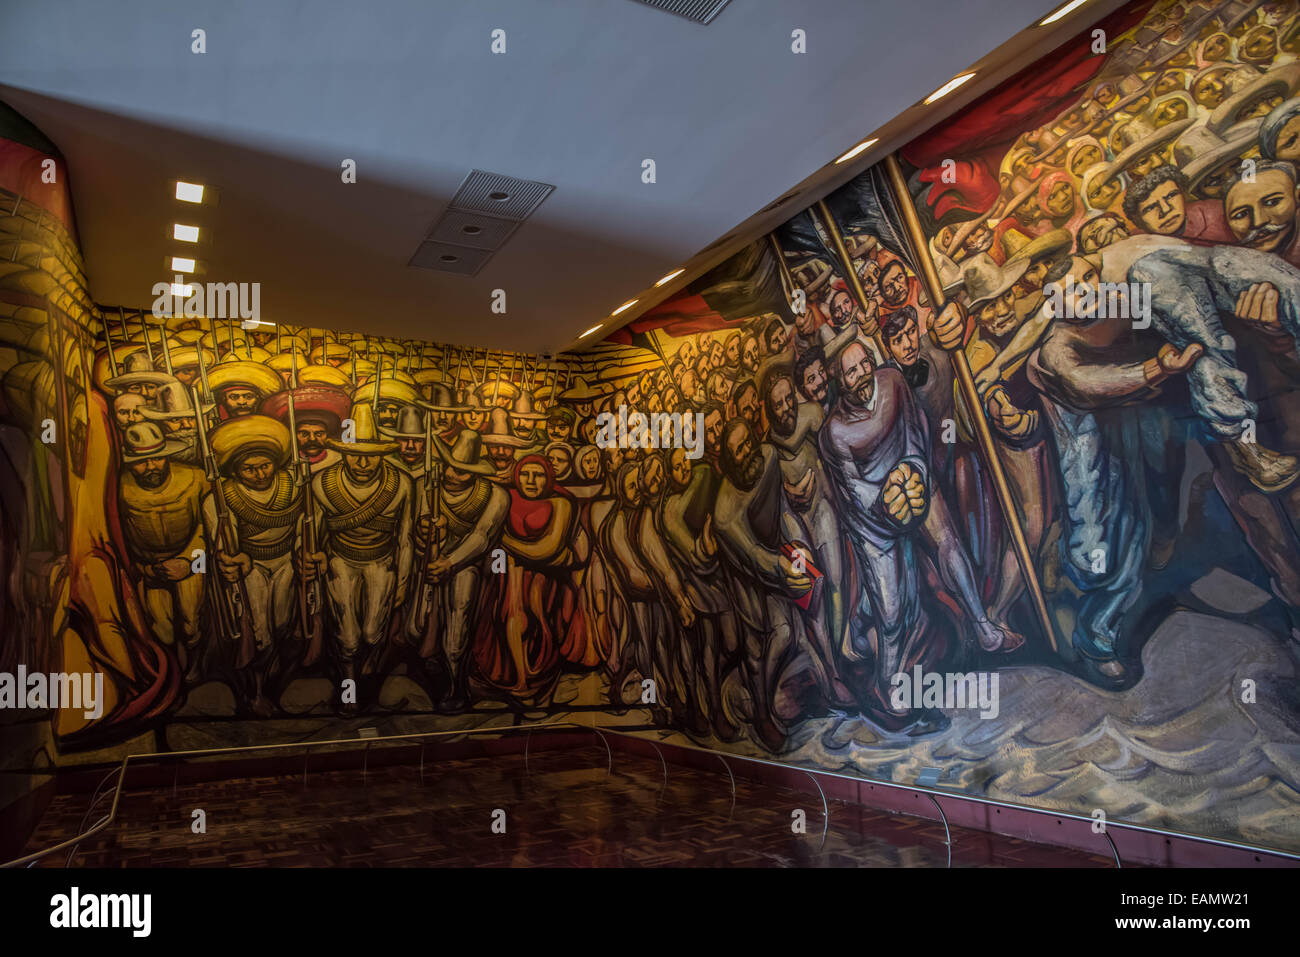 giant mural by mexican artist david alfaro siqueiros